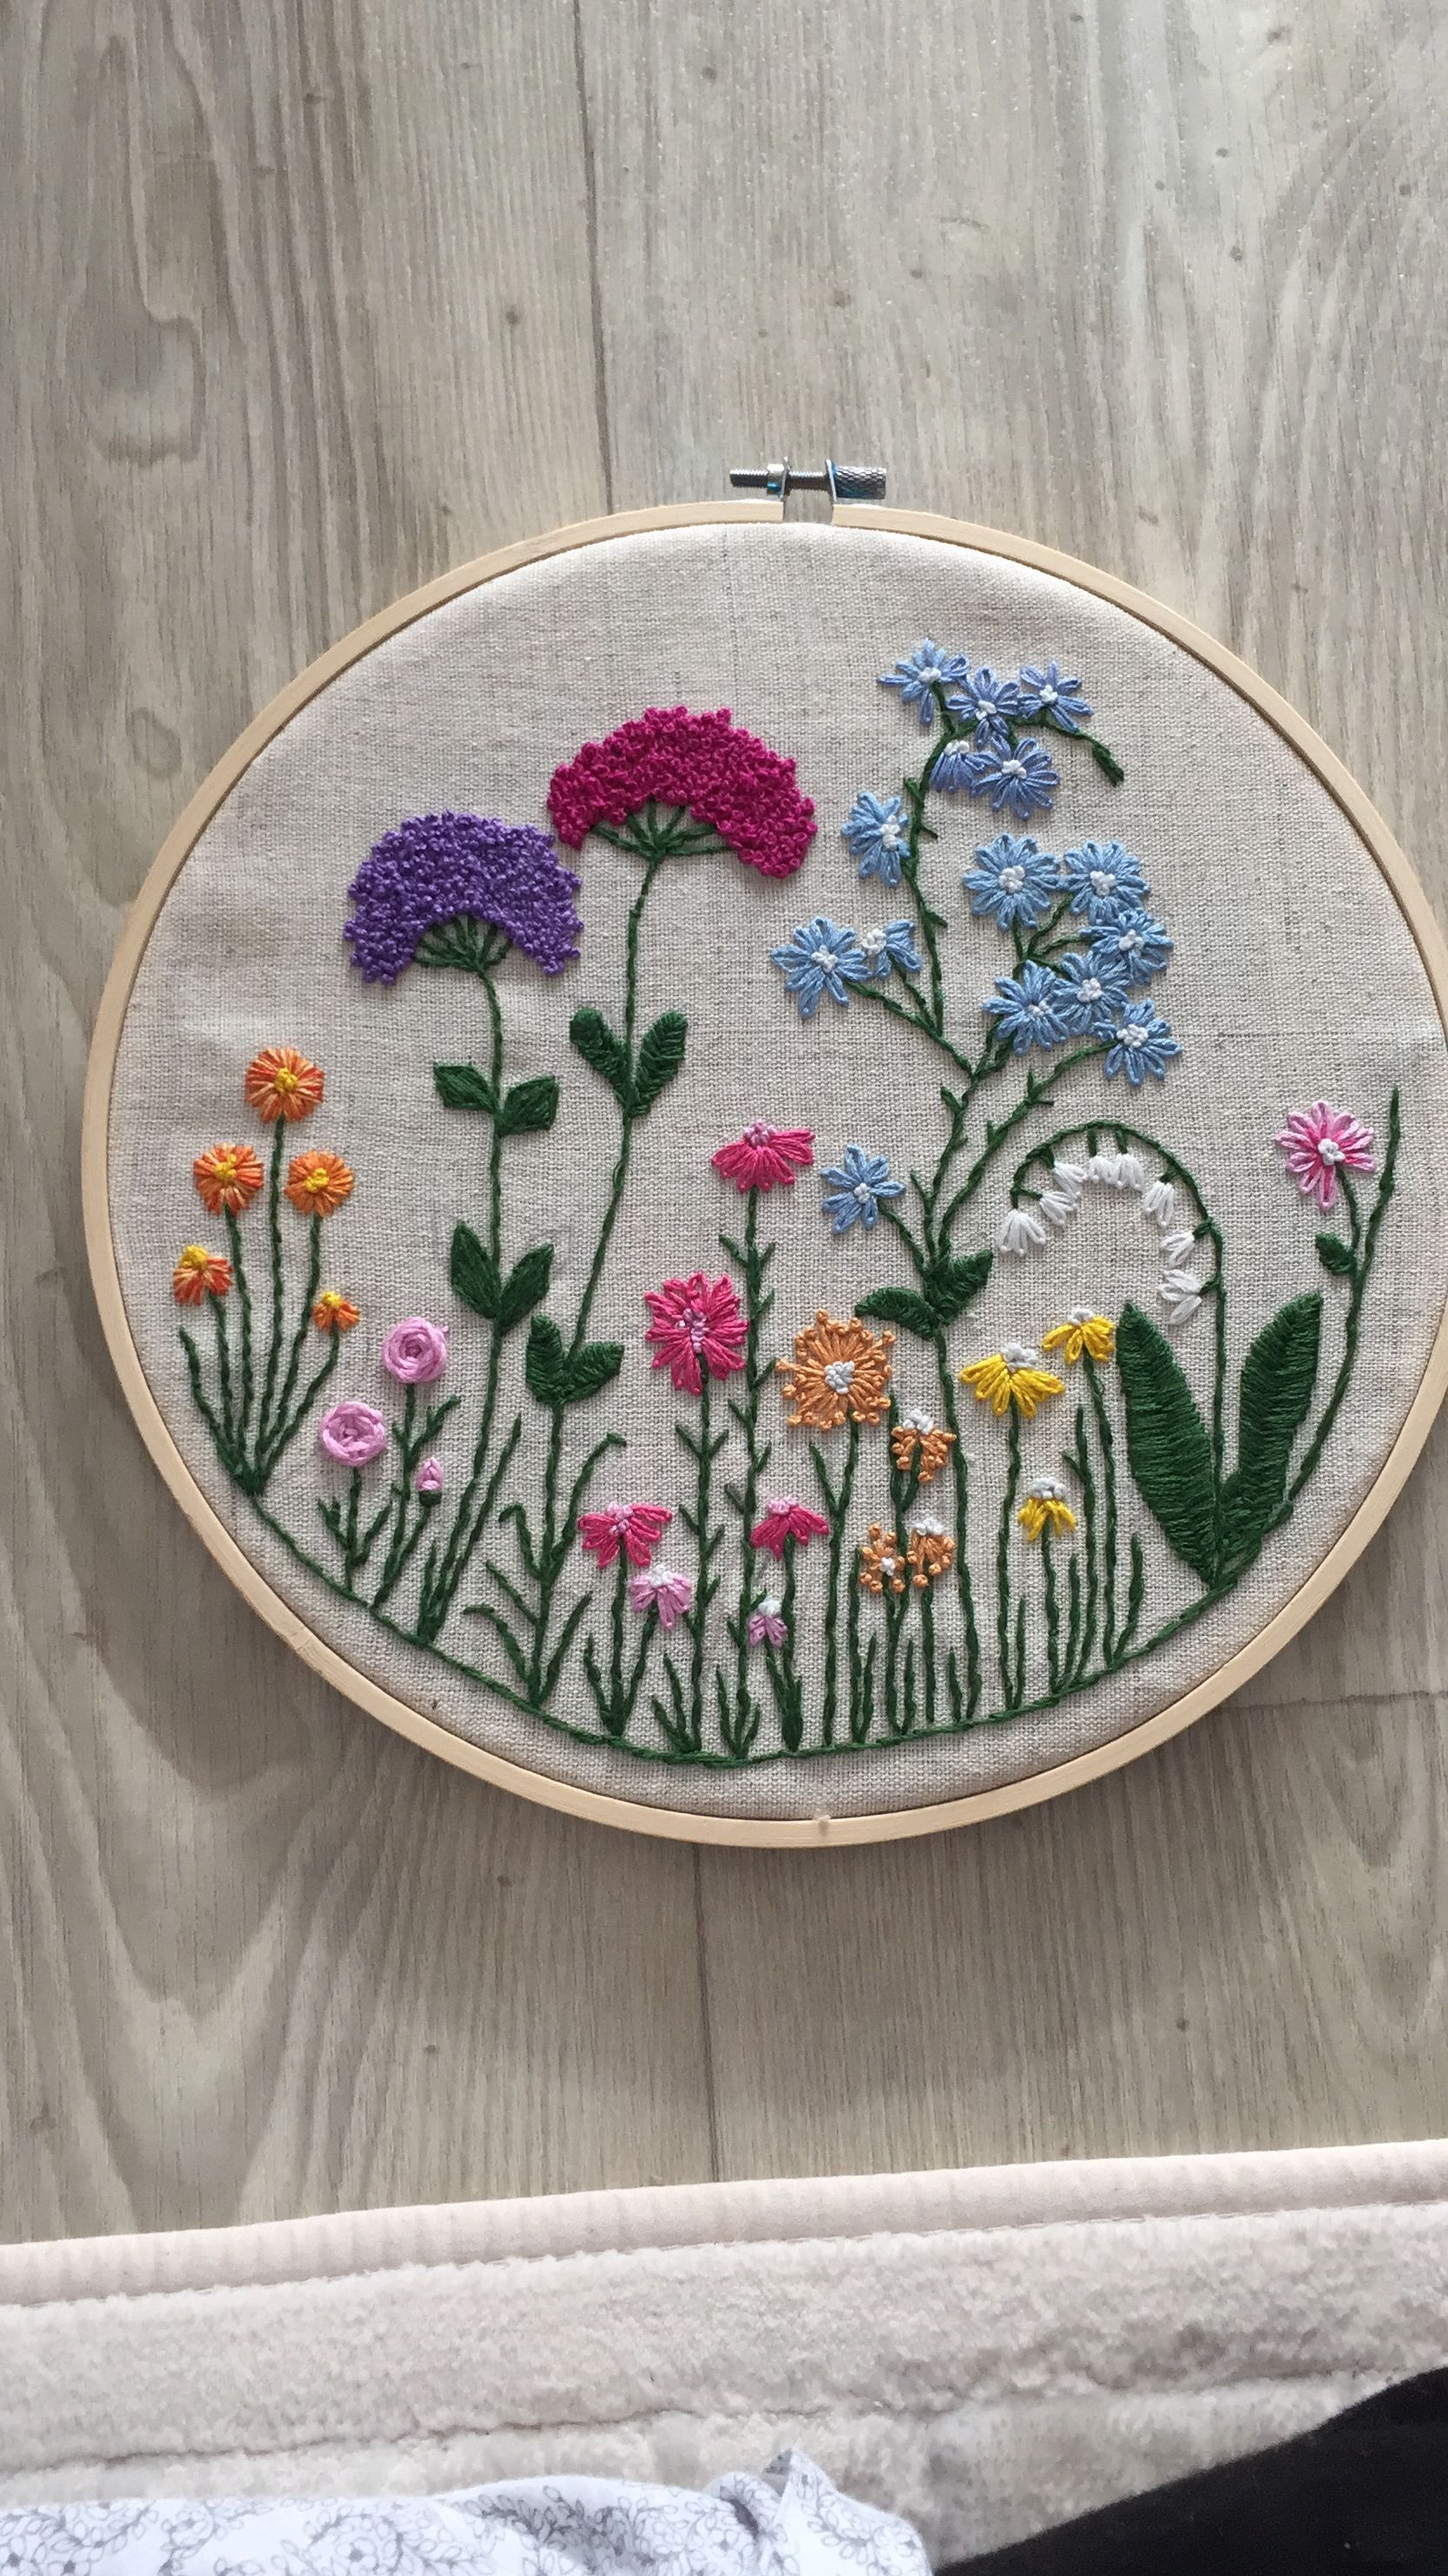 CrewelEmbroidery- Long & Short as Soft Shading in 2+ Colors - Embroidery Patterns #floralembroidery